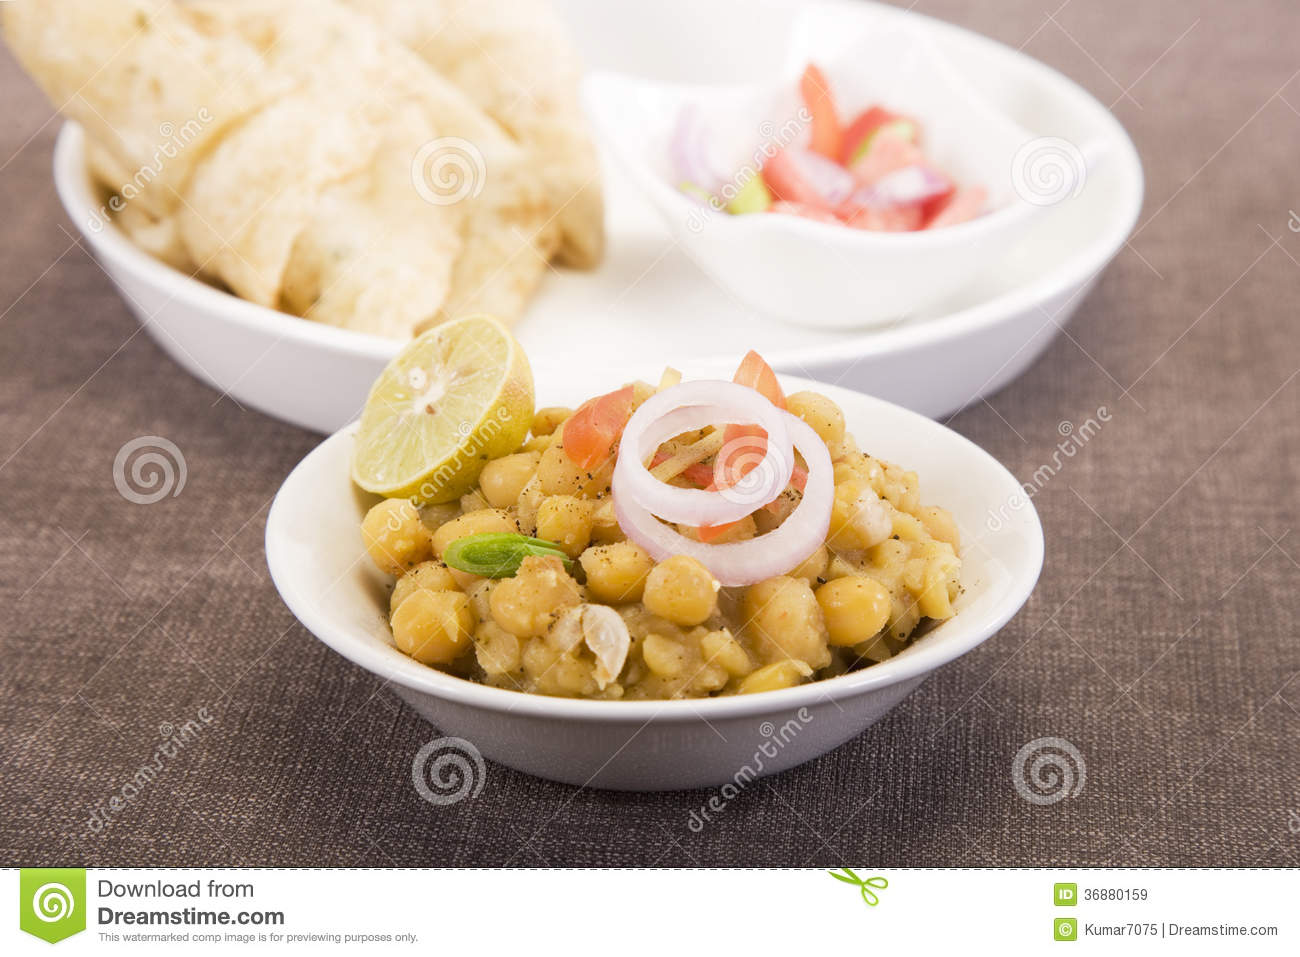 Download Matra Chaat Con Aloo Kulcha Immagine Stock - Immagine di zenzero, ceci: 36880159